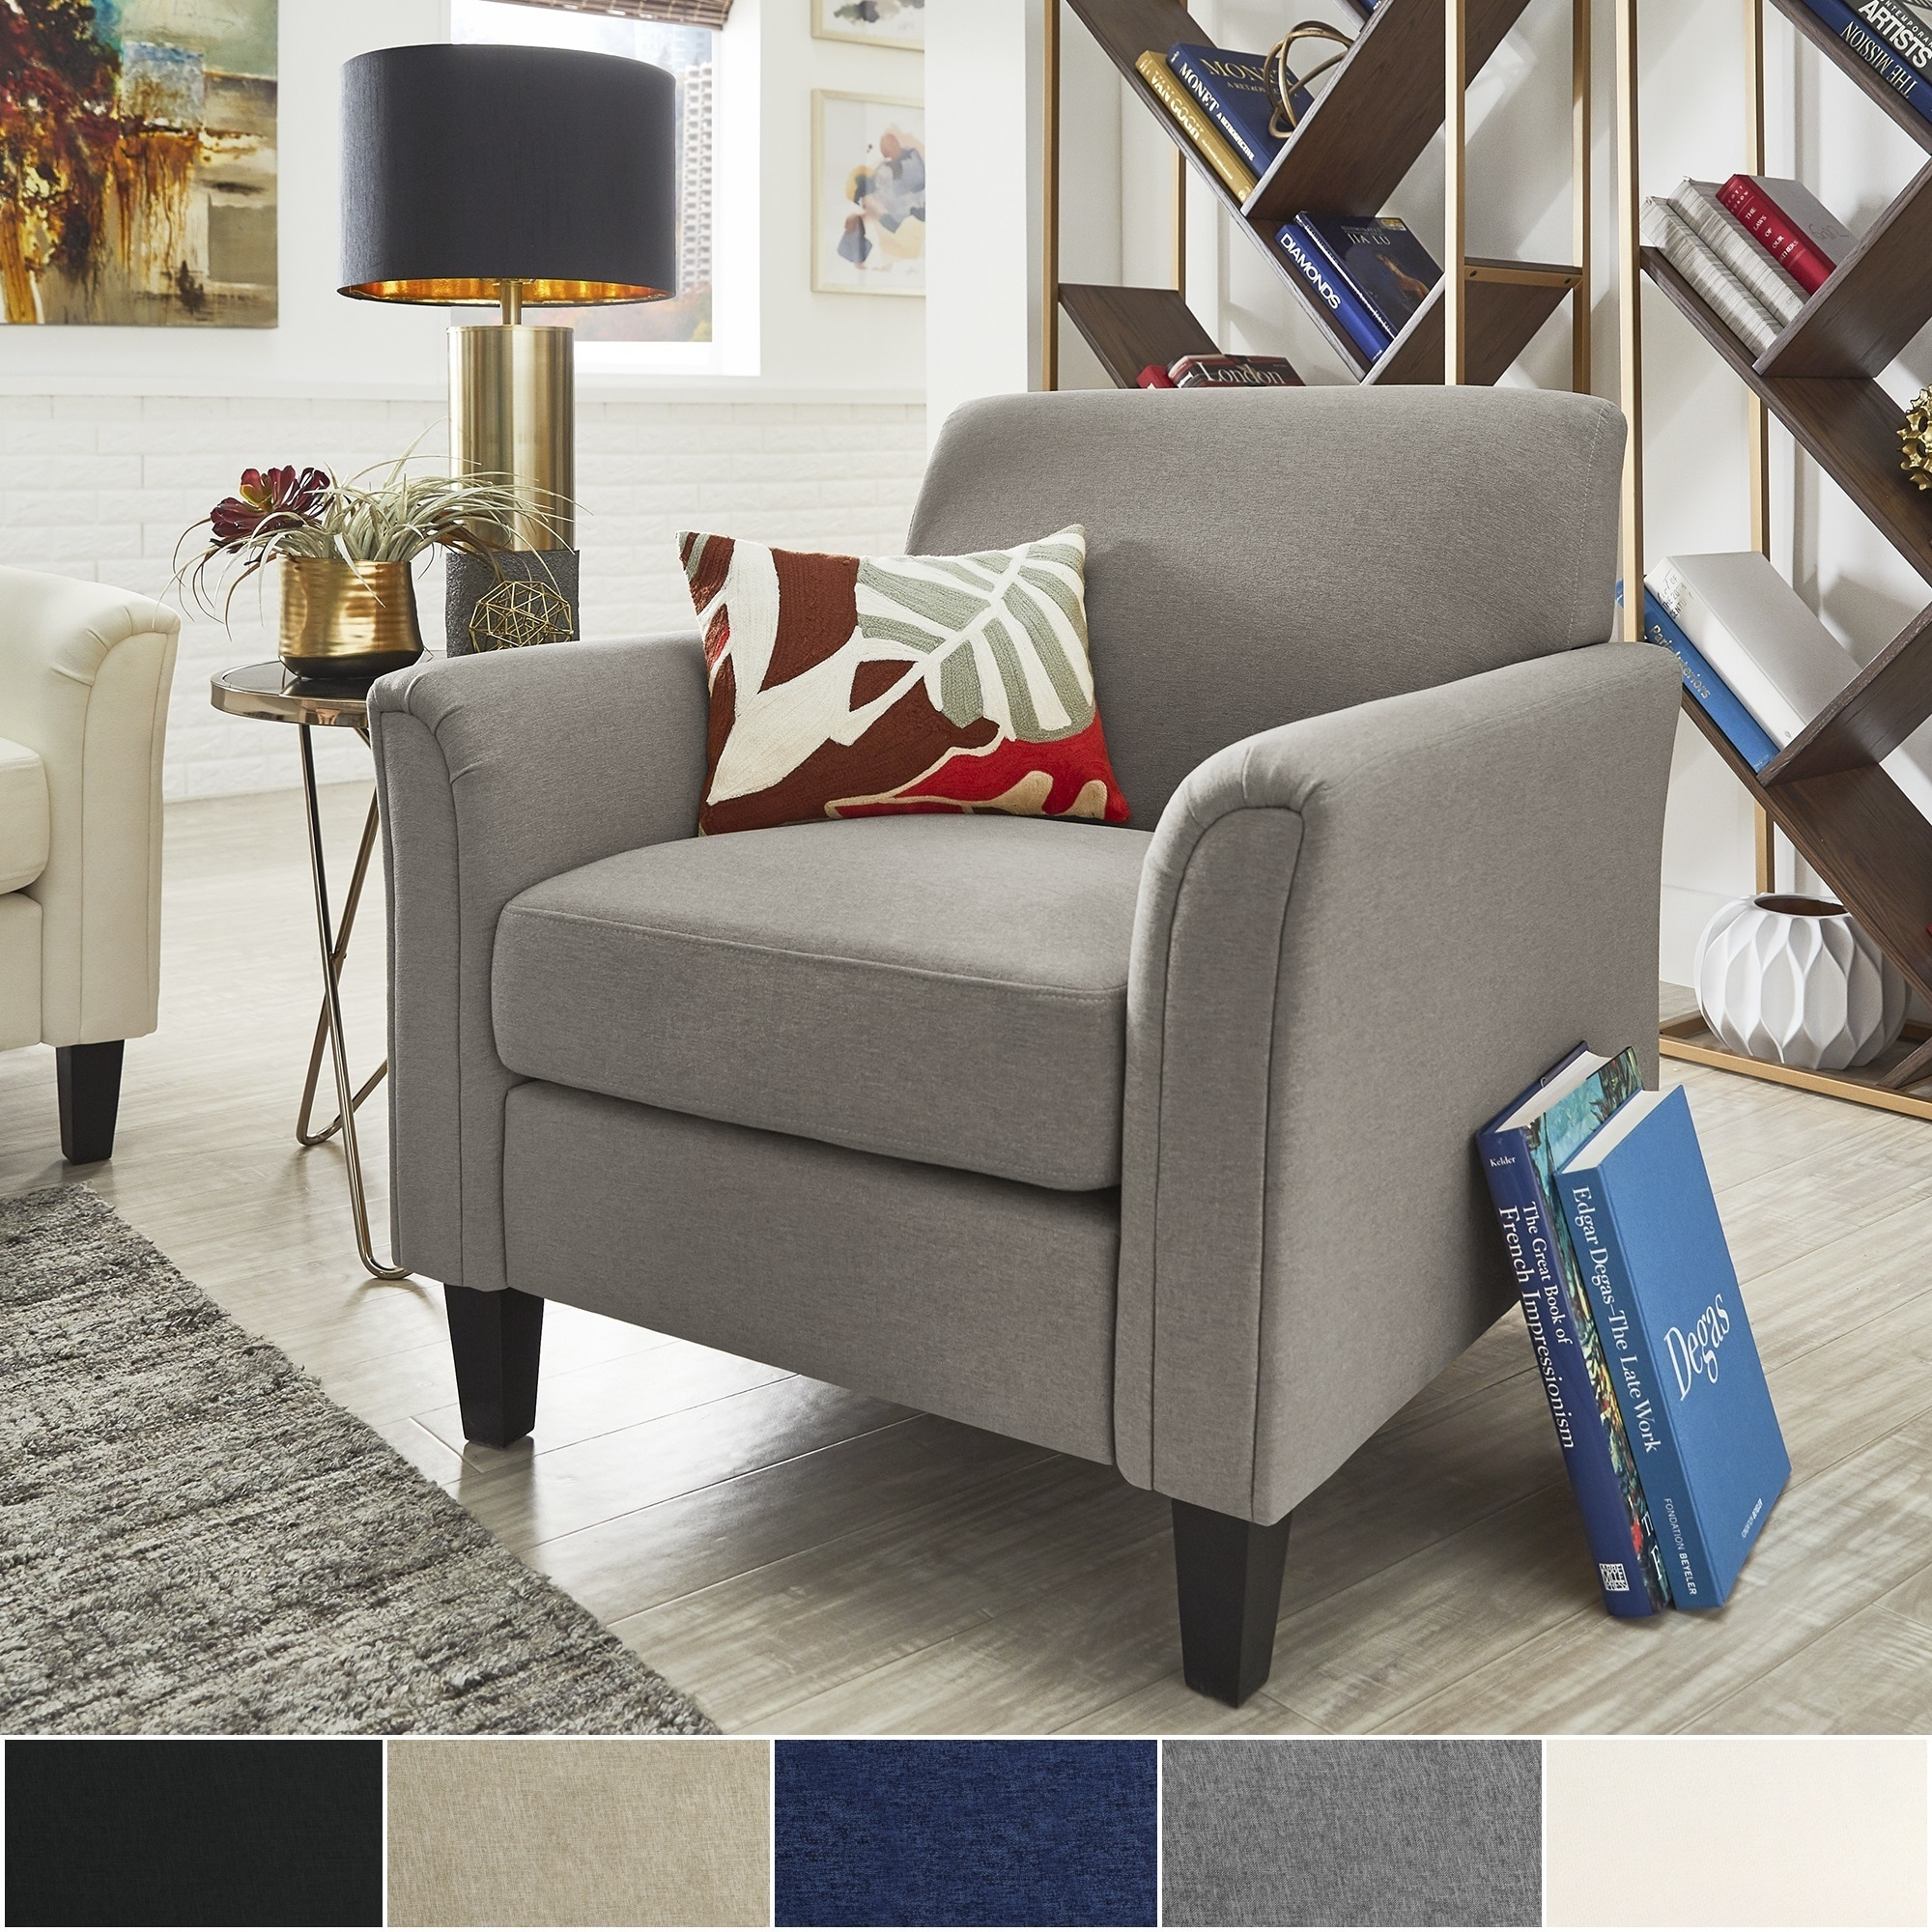 Uptown II Modern Accent Chair by iNSPIRE Q Classic (Navy)